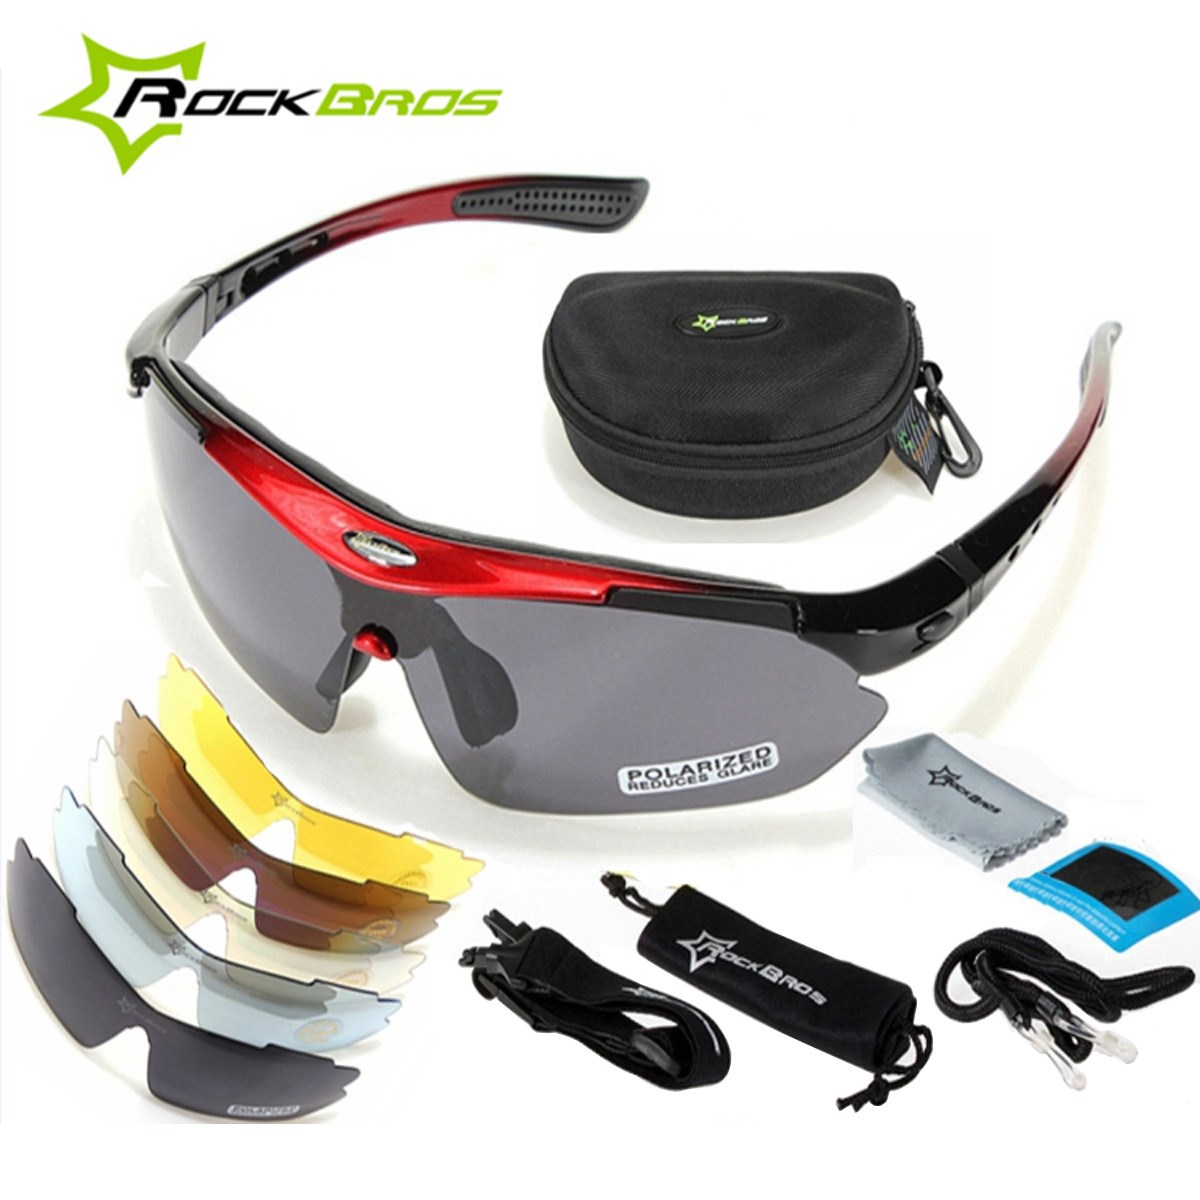 ROCKBROS Polarized Cycling Bike Bicycle Sunglasses Outdoor Sports Glasses Goggles Eyewear 5 Lens 4 Colors  4 lens ski goggles airsoftsports cycling sunglasses polarized men sport road mtb mountain bike glasses eyewear